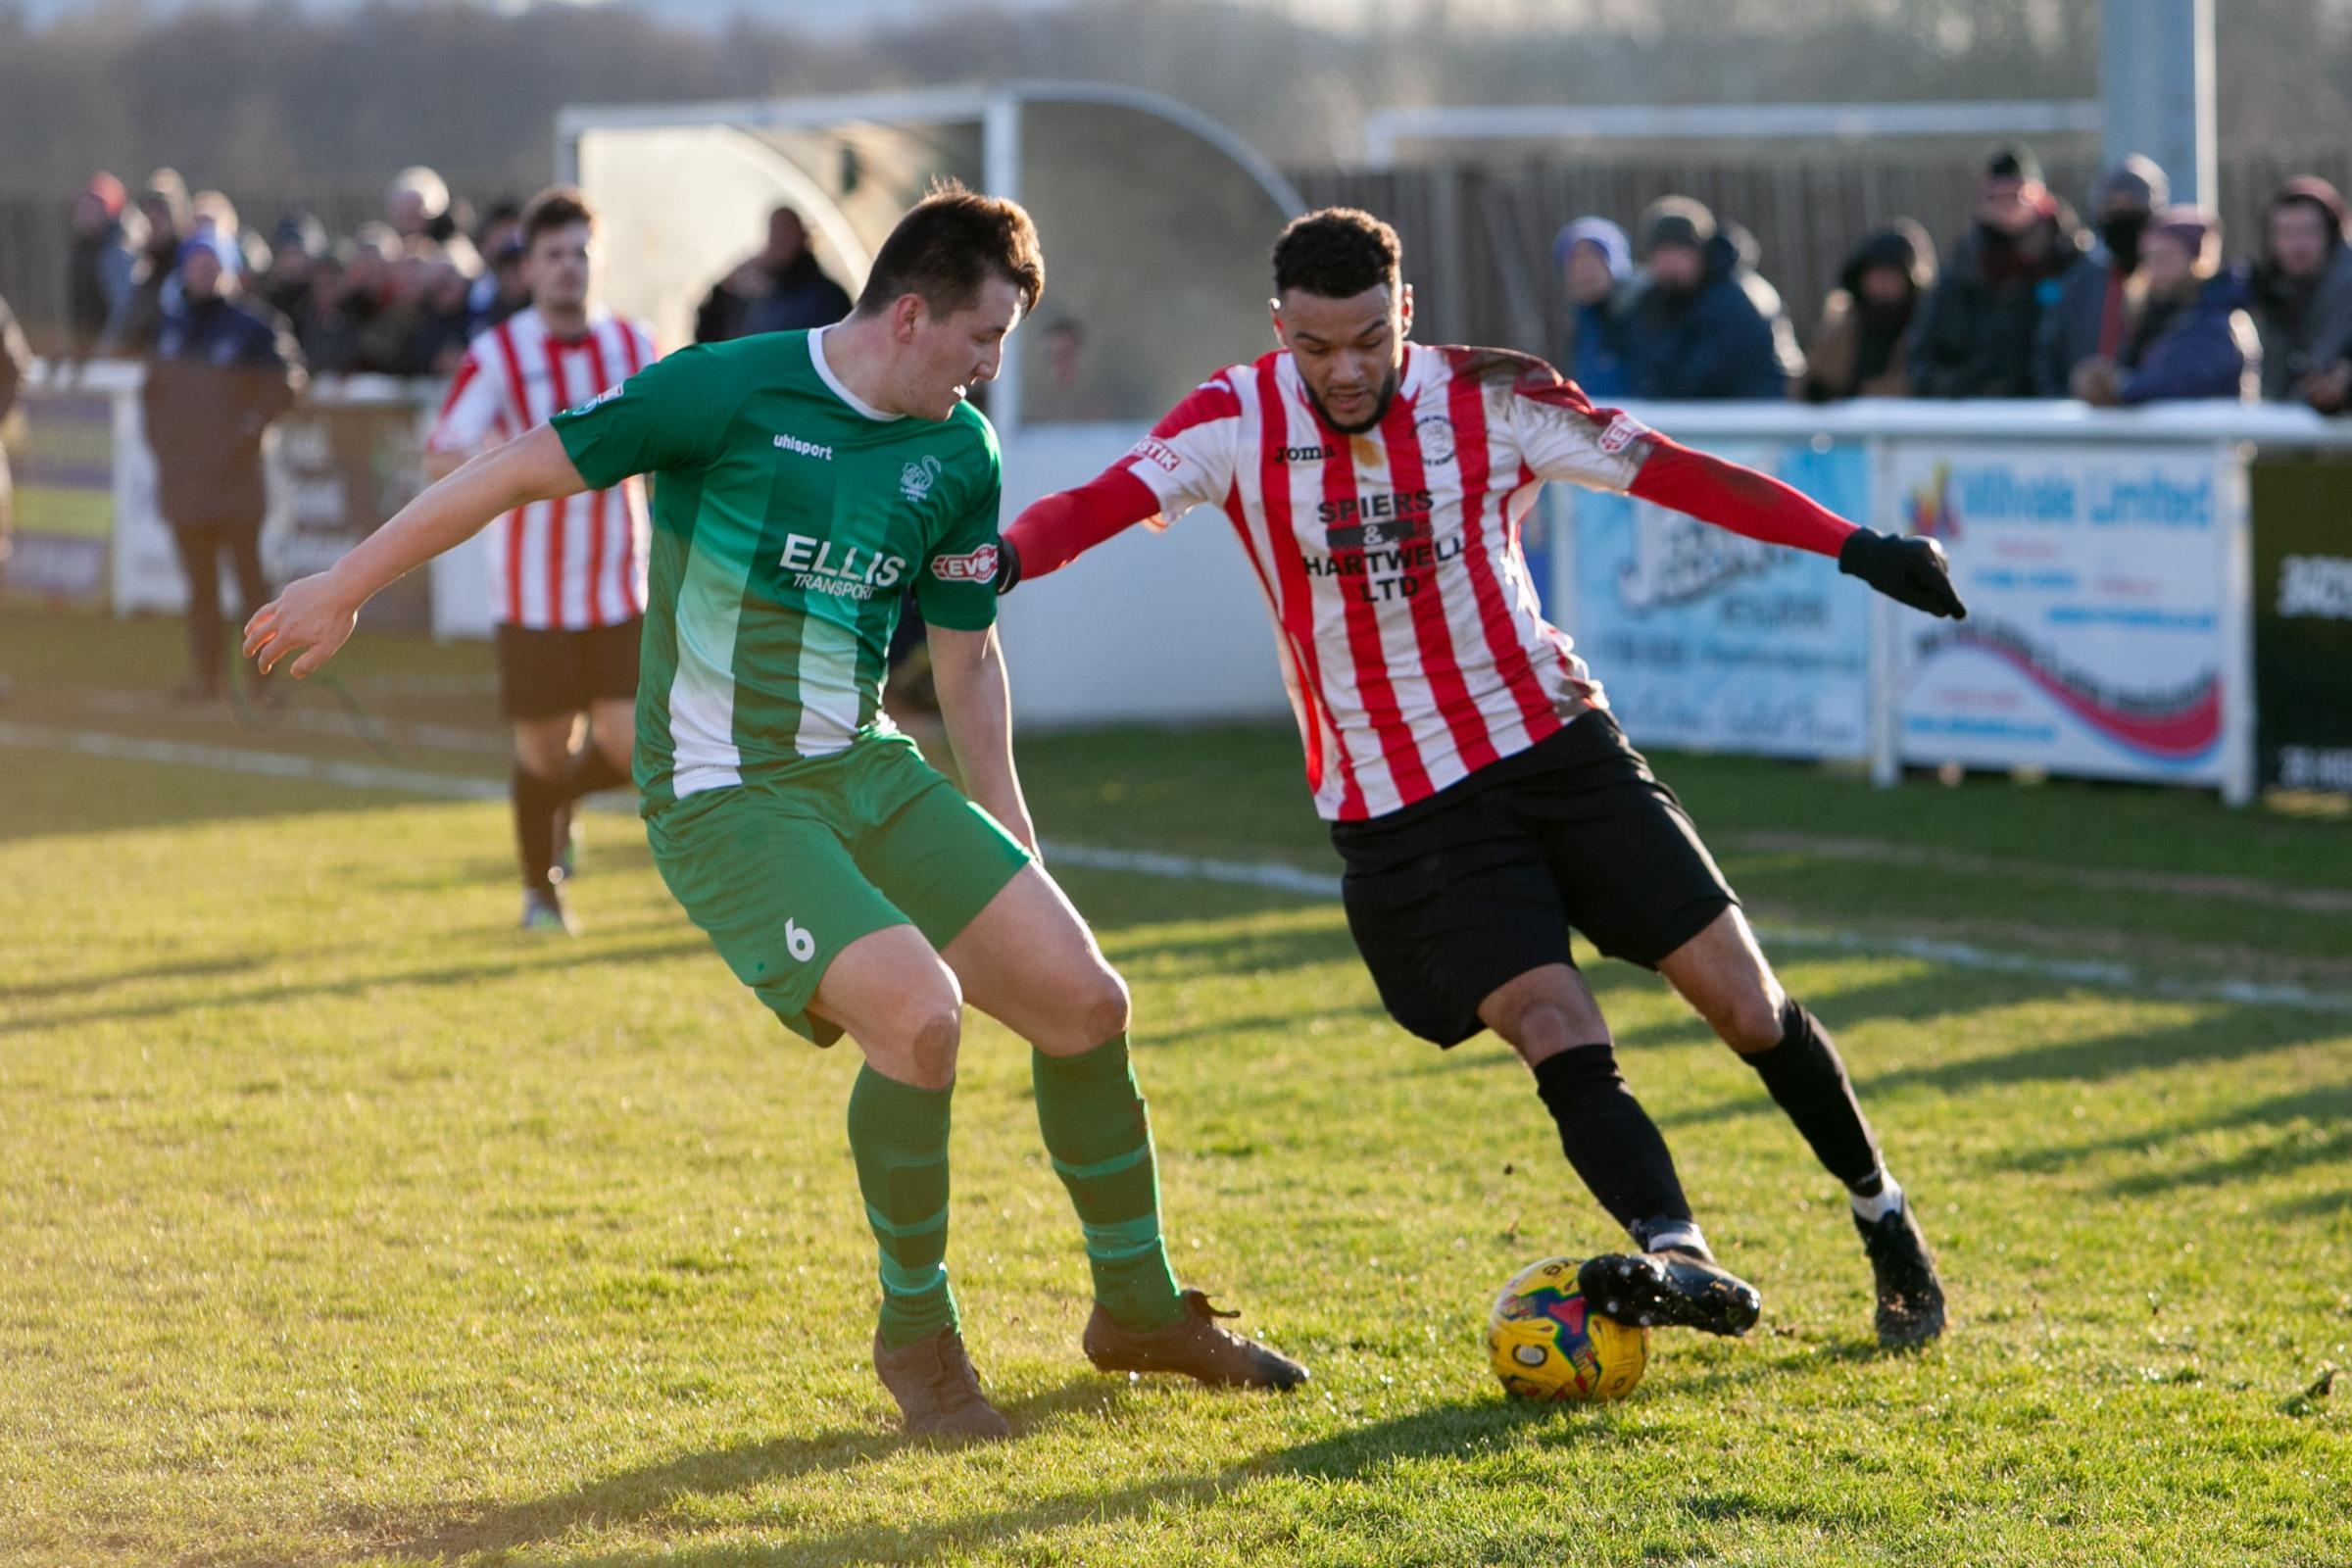 MR GOALS: Kane Simpson on the attack against Slimbridge. Pic: staurtpurfield.co.uk